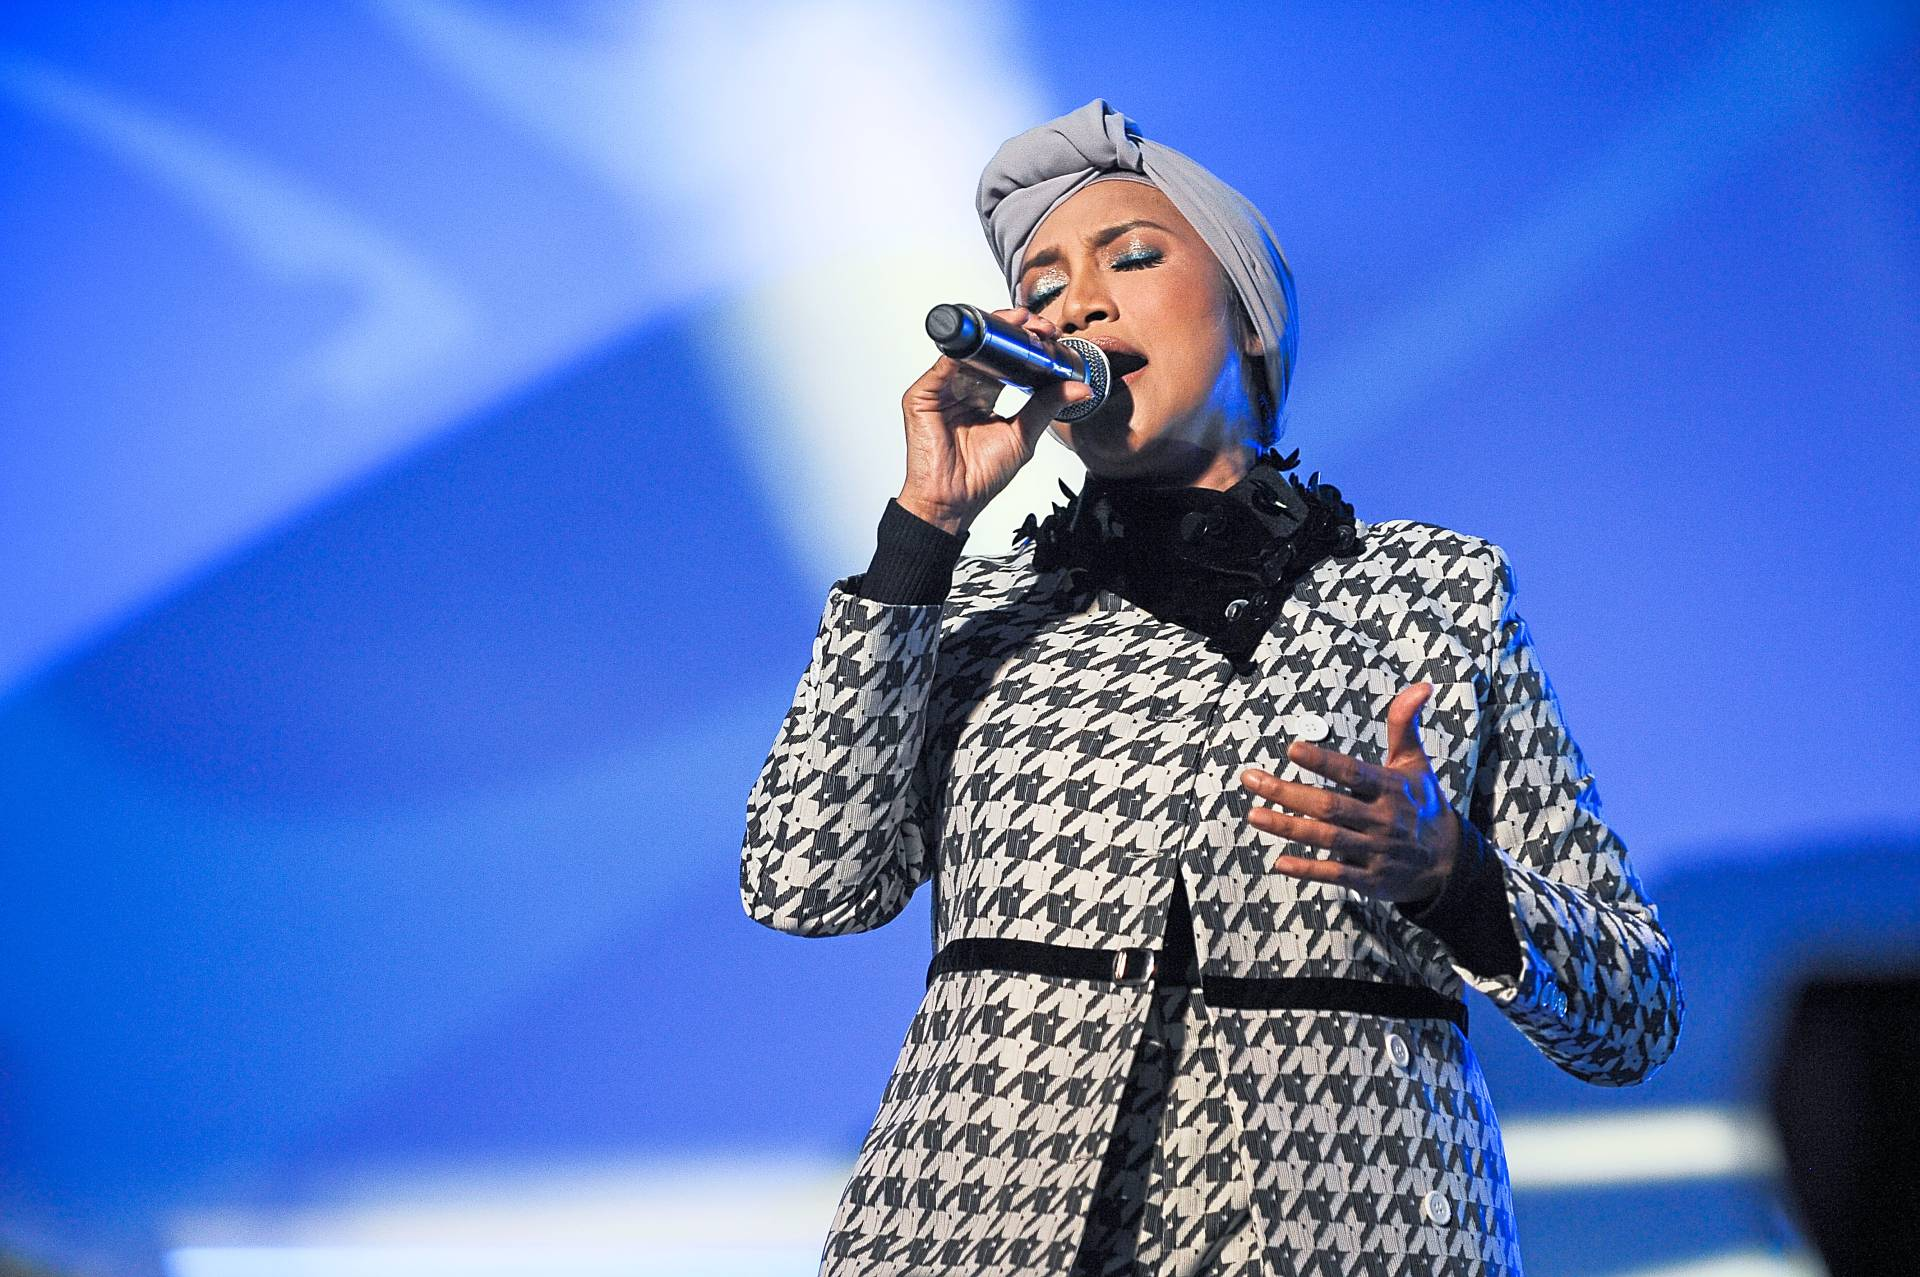 Ziana Zain was among the local artistes who performed at the concert.